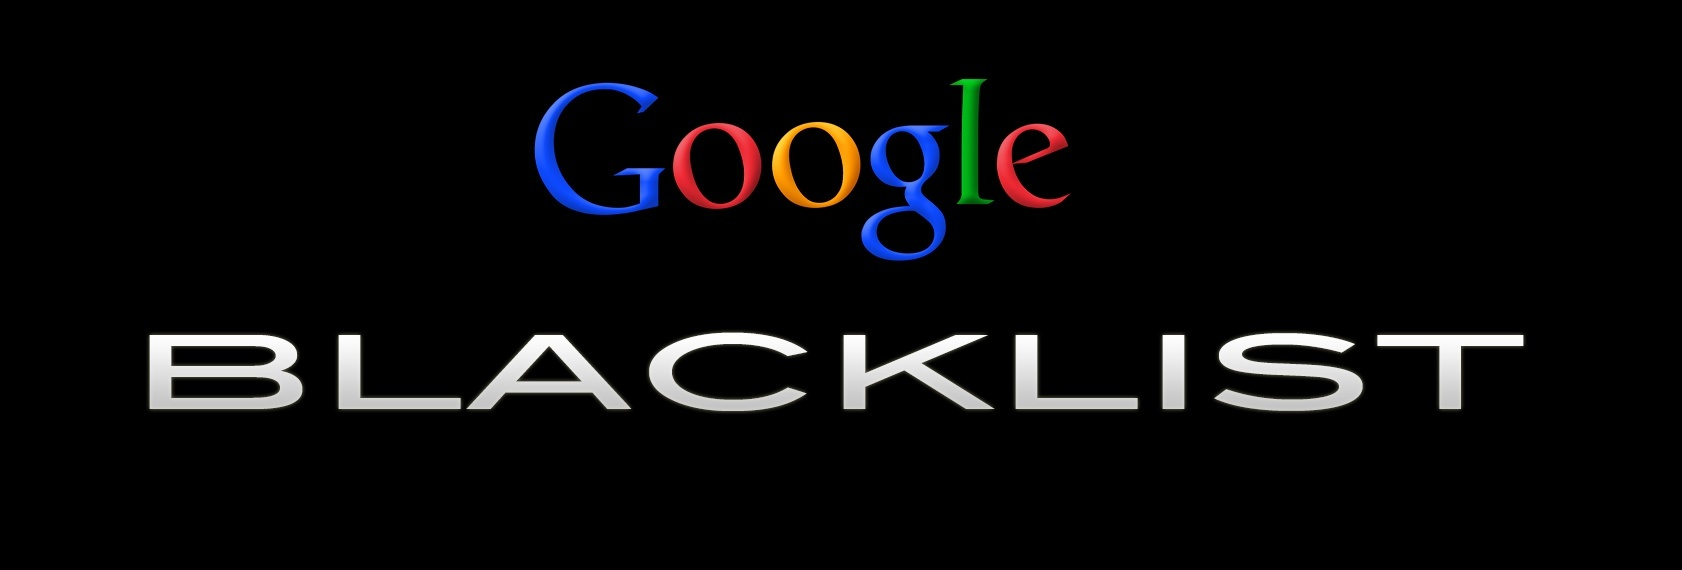 google blacklist website